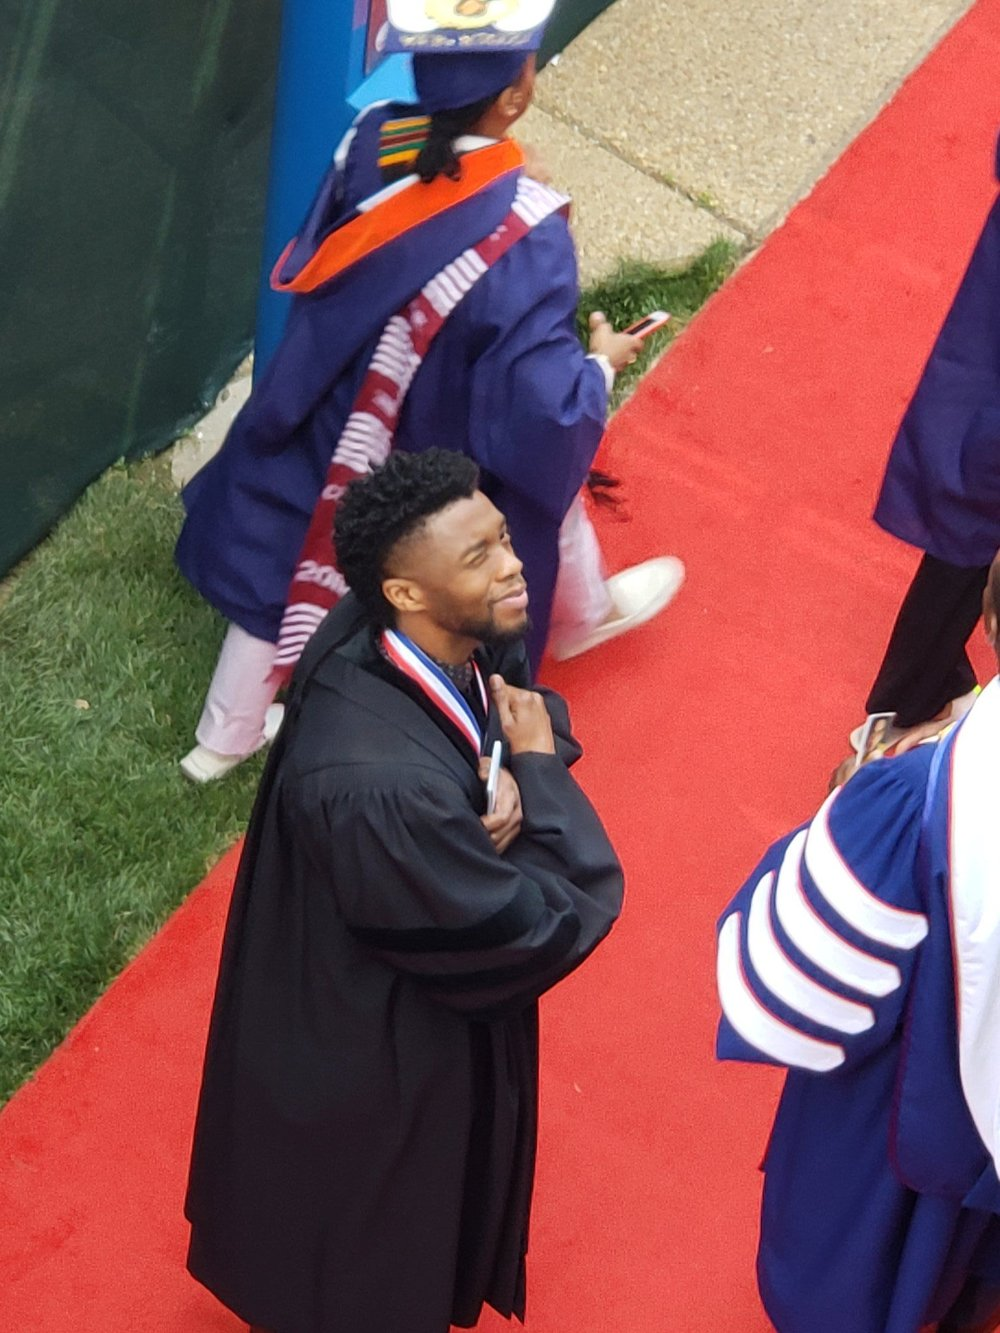 Chadwick Boseman, HU '00, entering 2018 commencement to receive his honorary doctorate. The Black Panther saluting. Wakanda Forever.